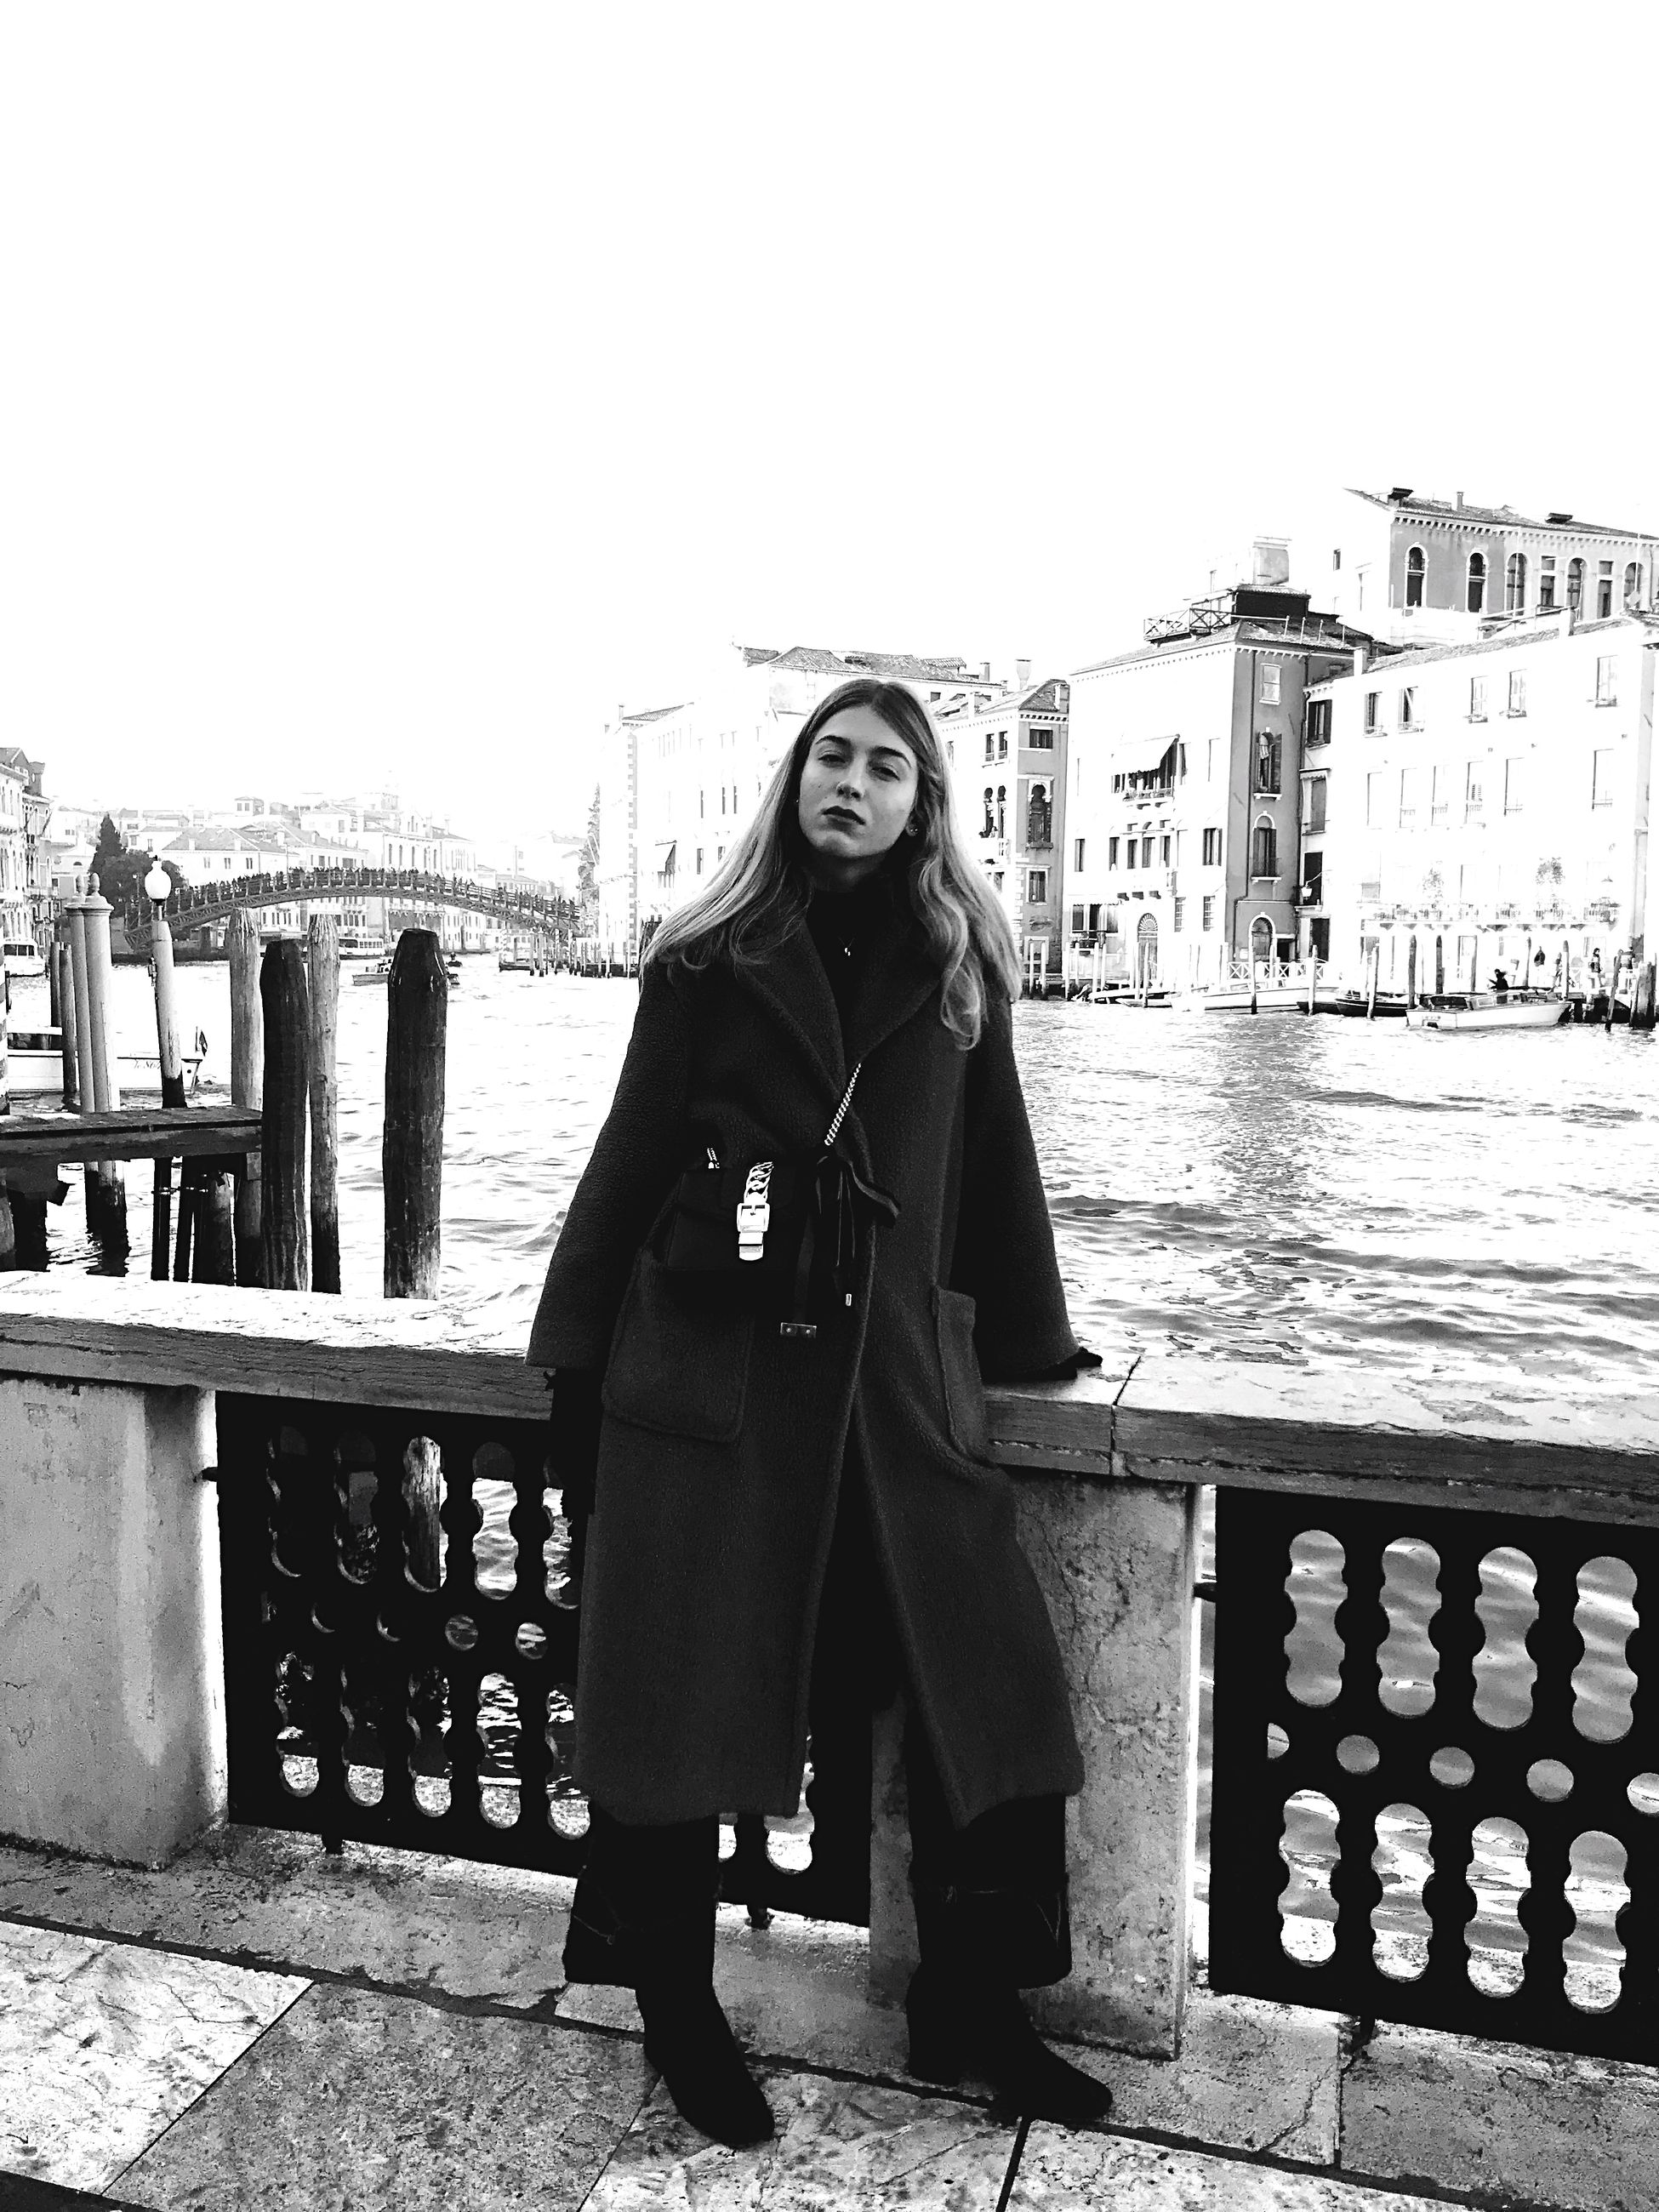 architecture, built structure, building exterior, water, one person, looking at camera, portrait, real people, railing, lifestyles, standing, leisure activity, young women, nature, front view, full length, river, women, outdoors, warm clothing, beautiful woman